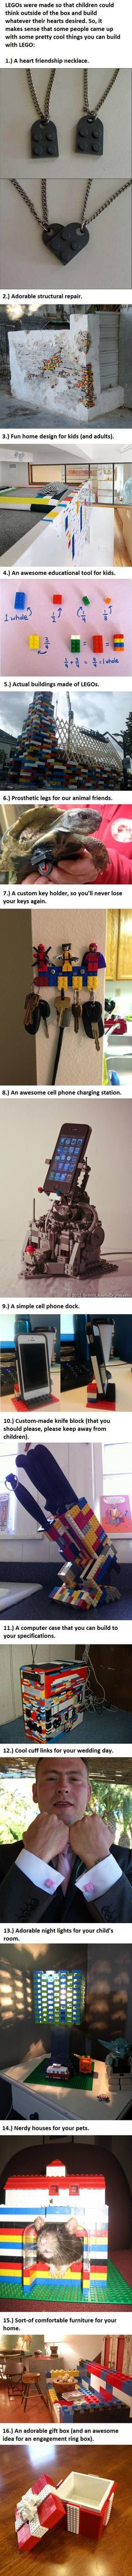 16 awesome uses for LEGO you probably didn't think about